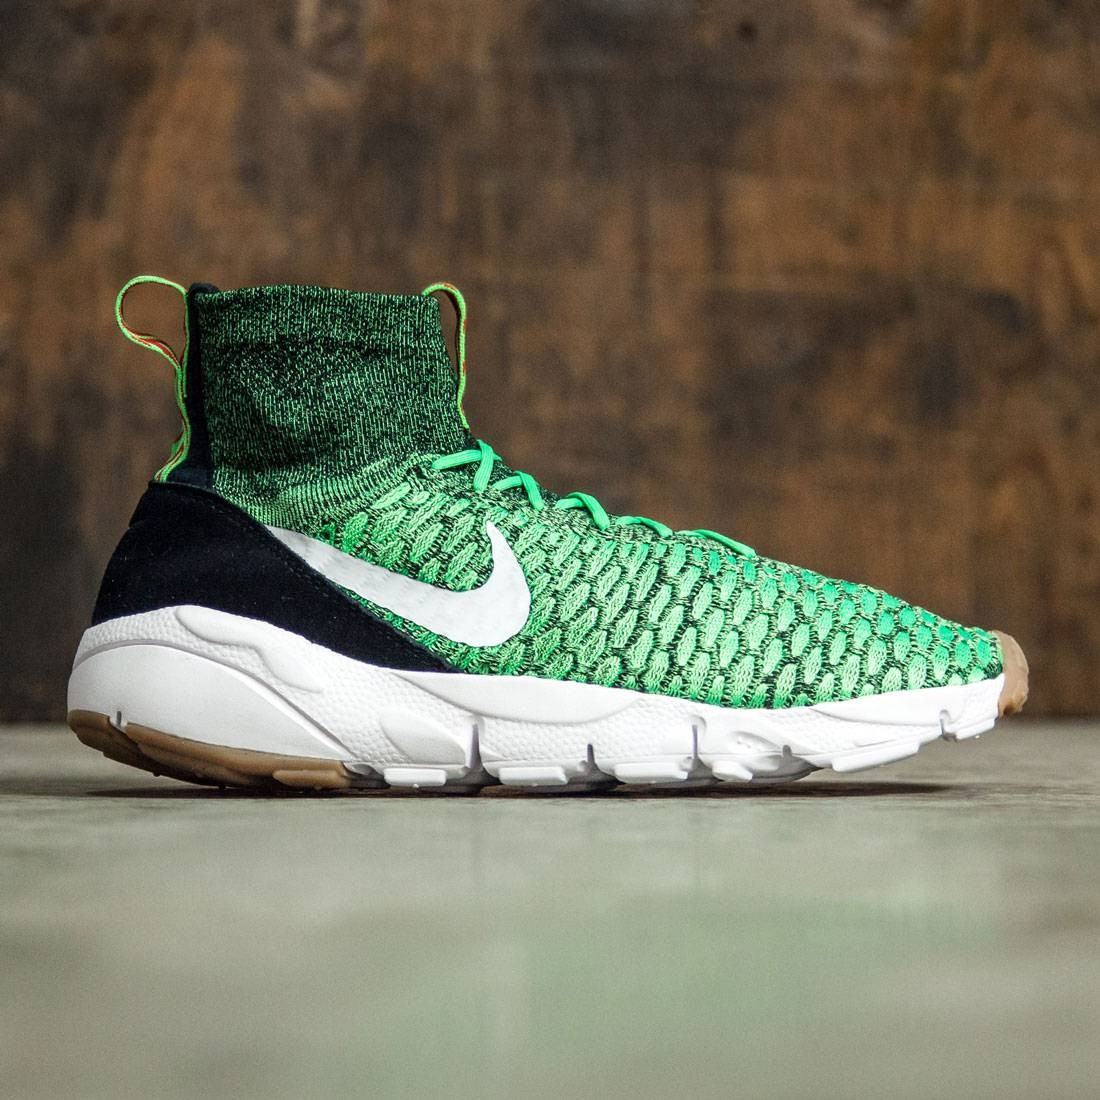 Lógico presidente Masacre  Nike Men Air Footscape Magista Flyknit Shoe (poison green /  white-university red-black)